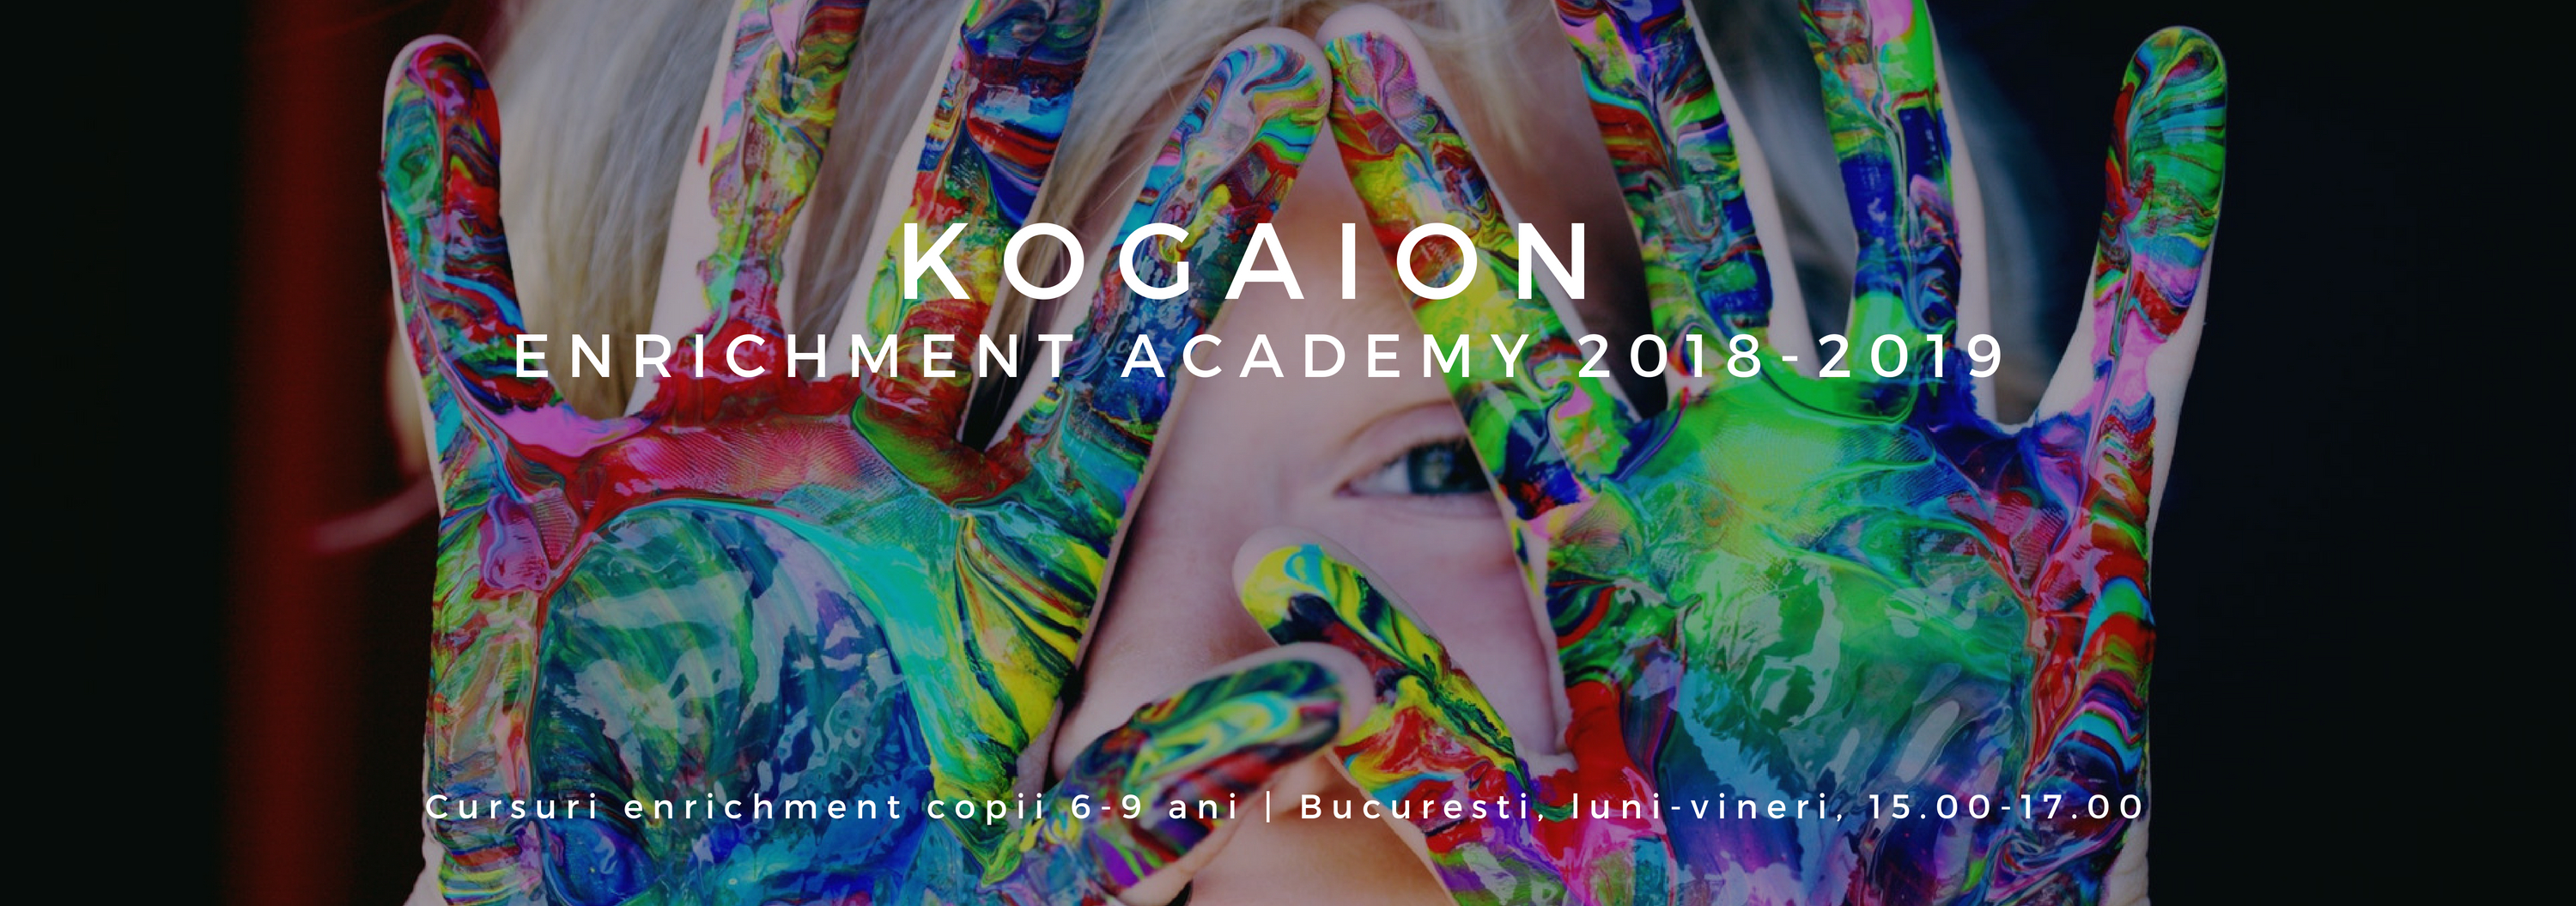 Kogaion Enrichment Academy